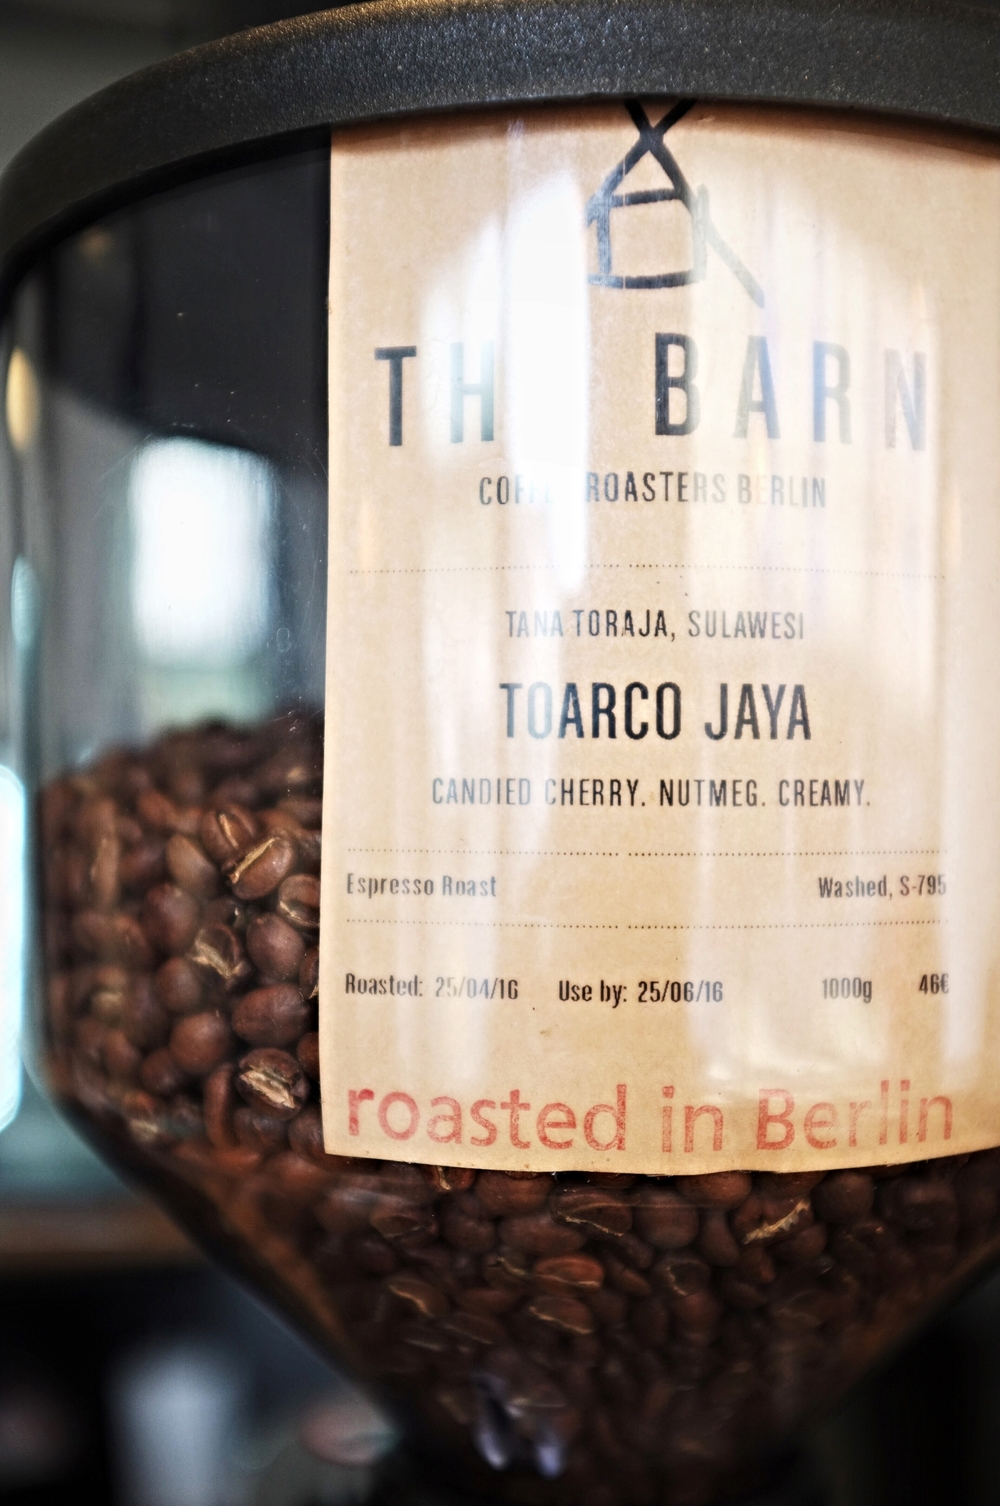 The Holy Cross Brewing Society serves The Barn Espresso. Roasted in Berlin